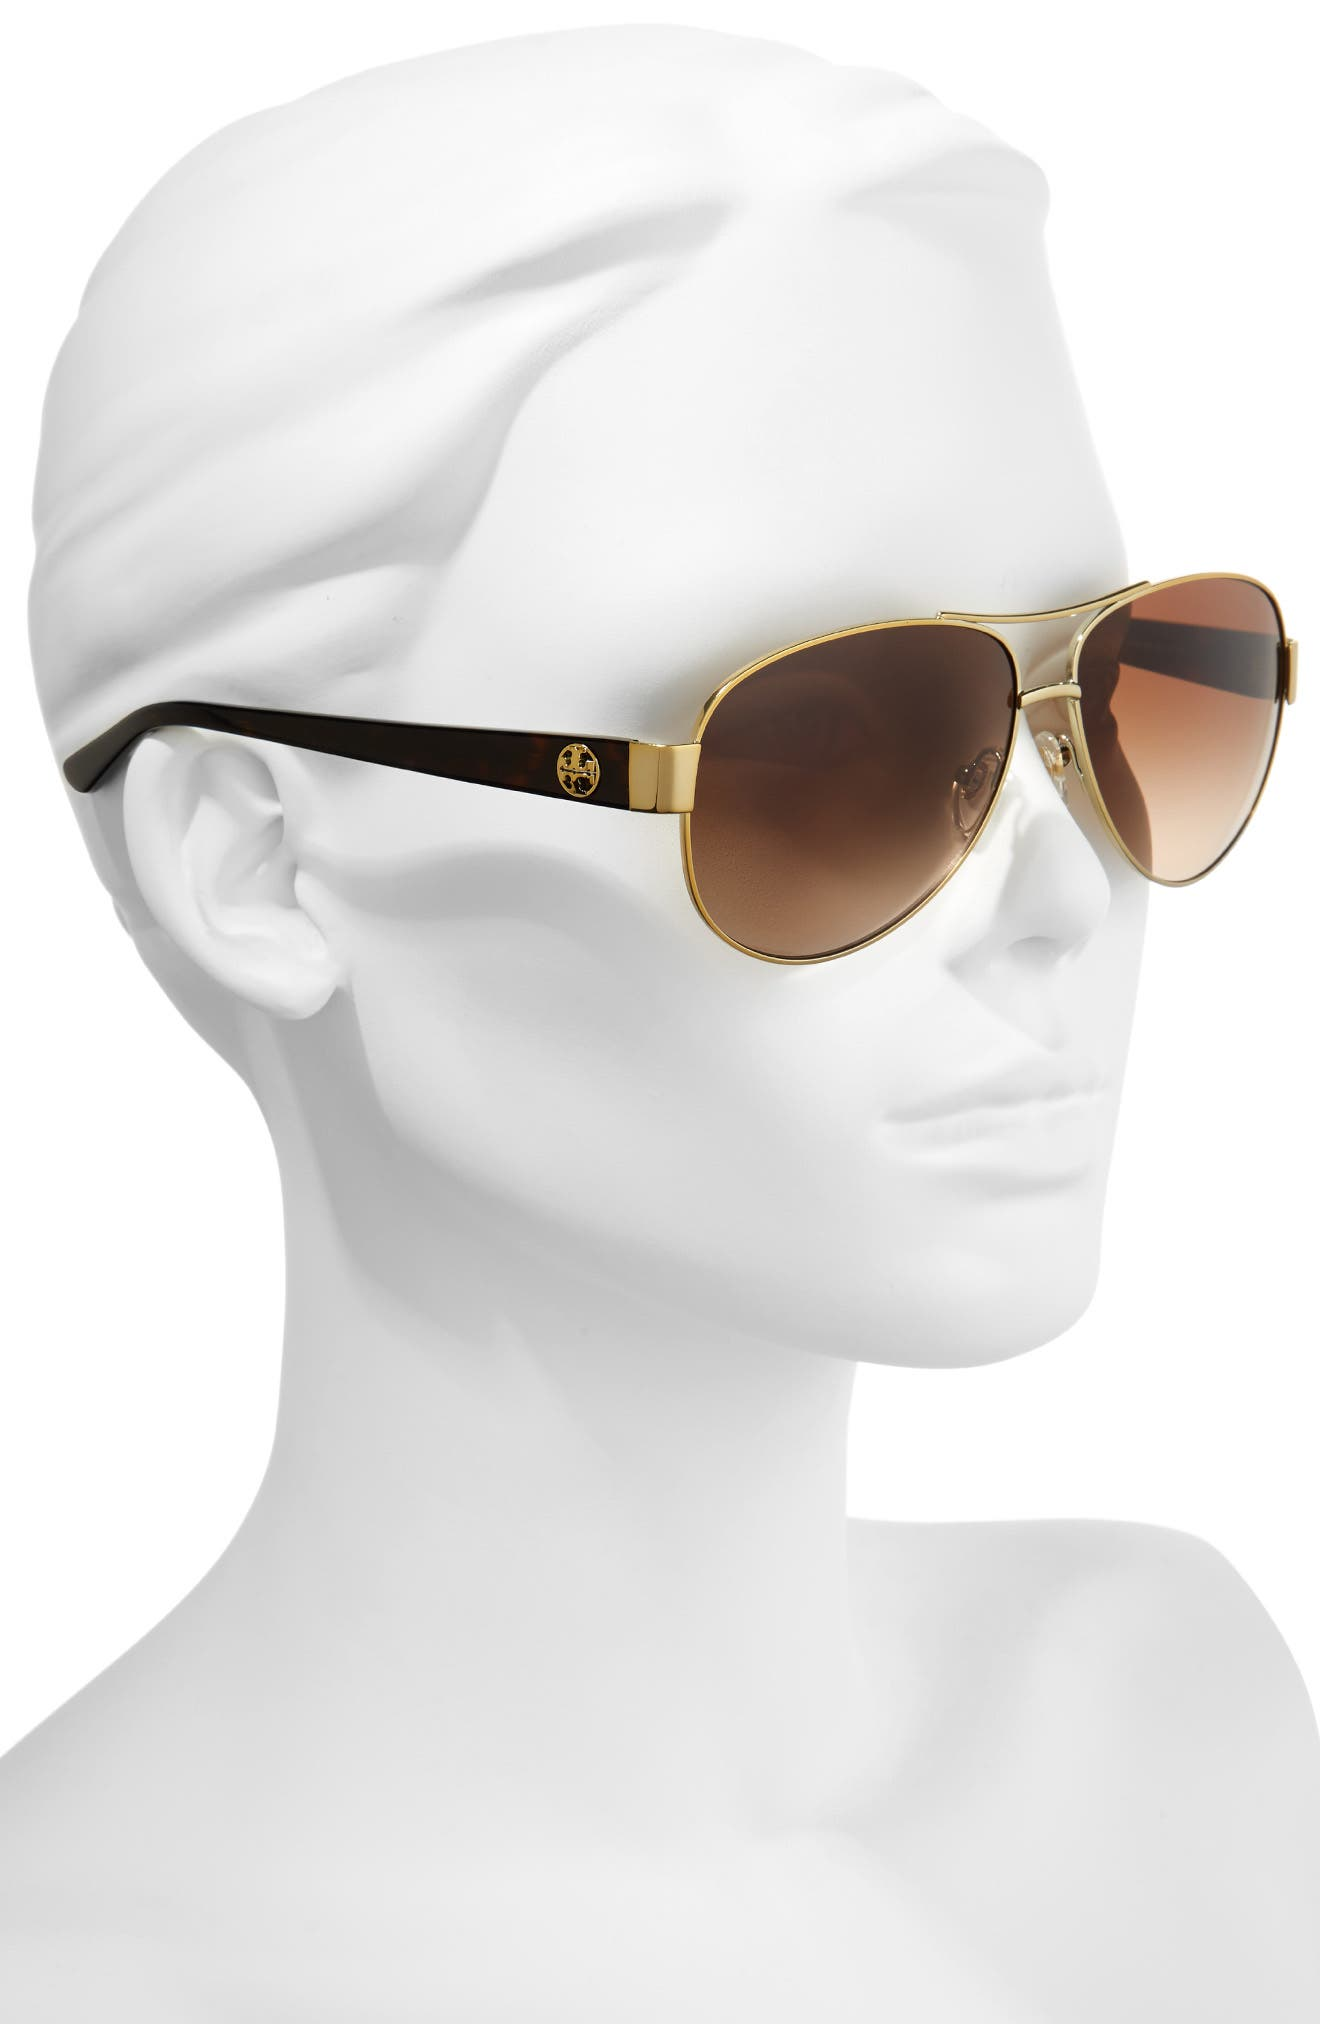 60mm Aviator Sunglasses,                             Alternate thumbnail 2, color,                             GOLD/ BROWN